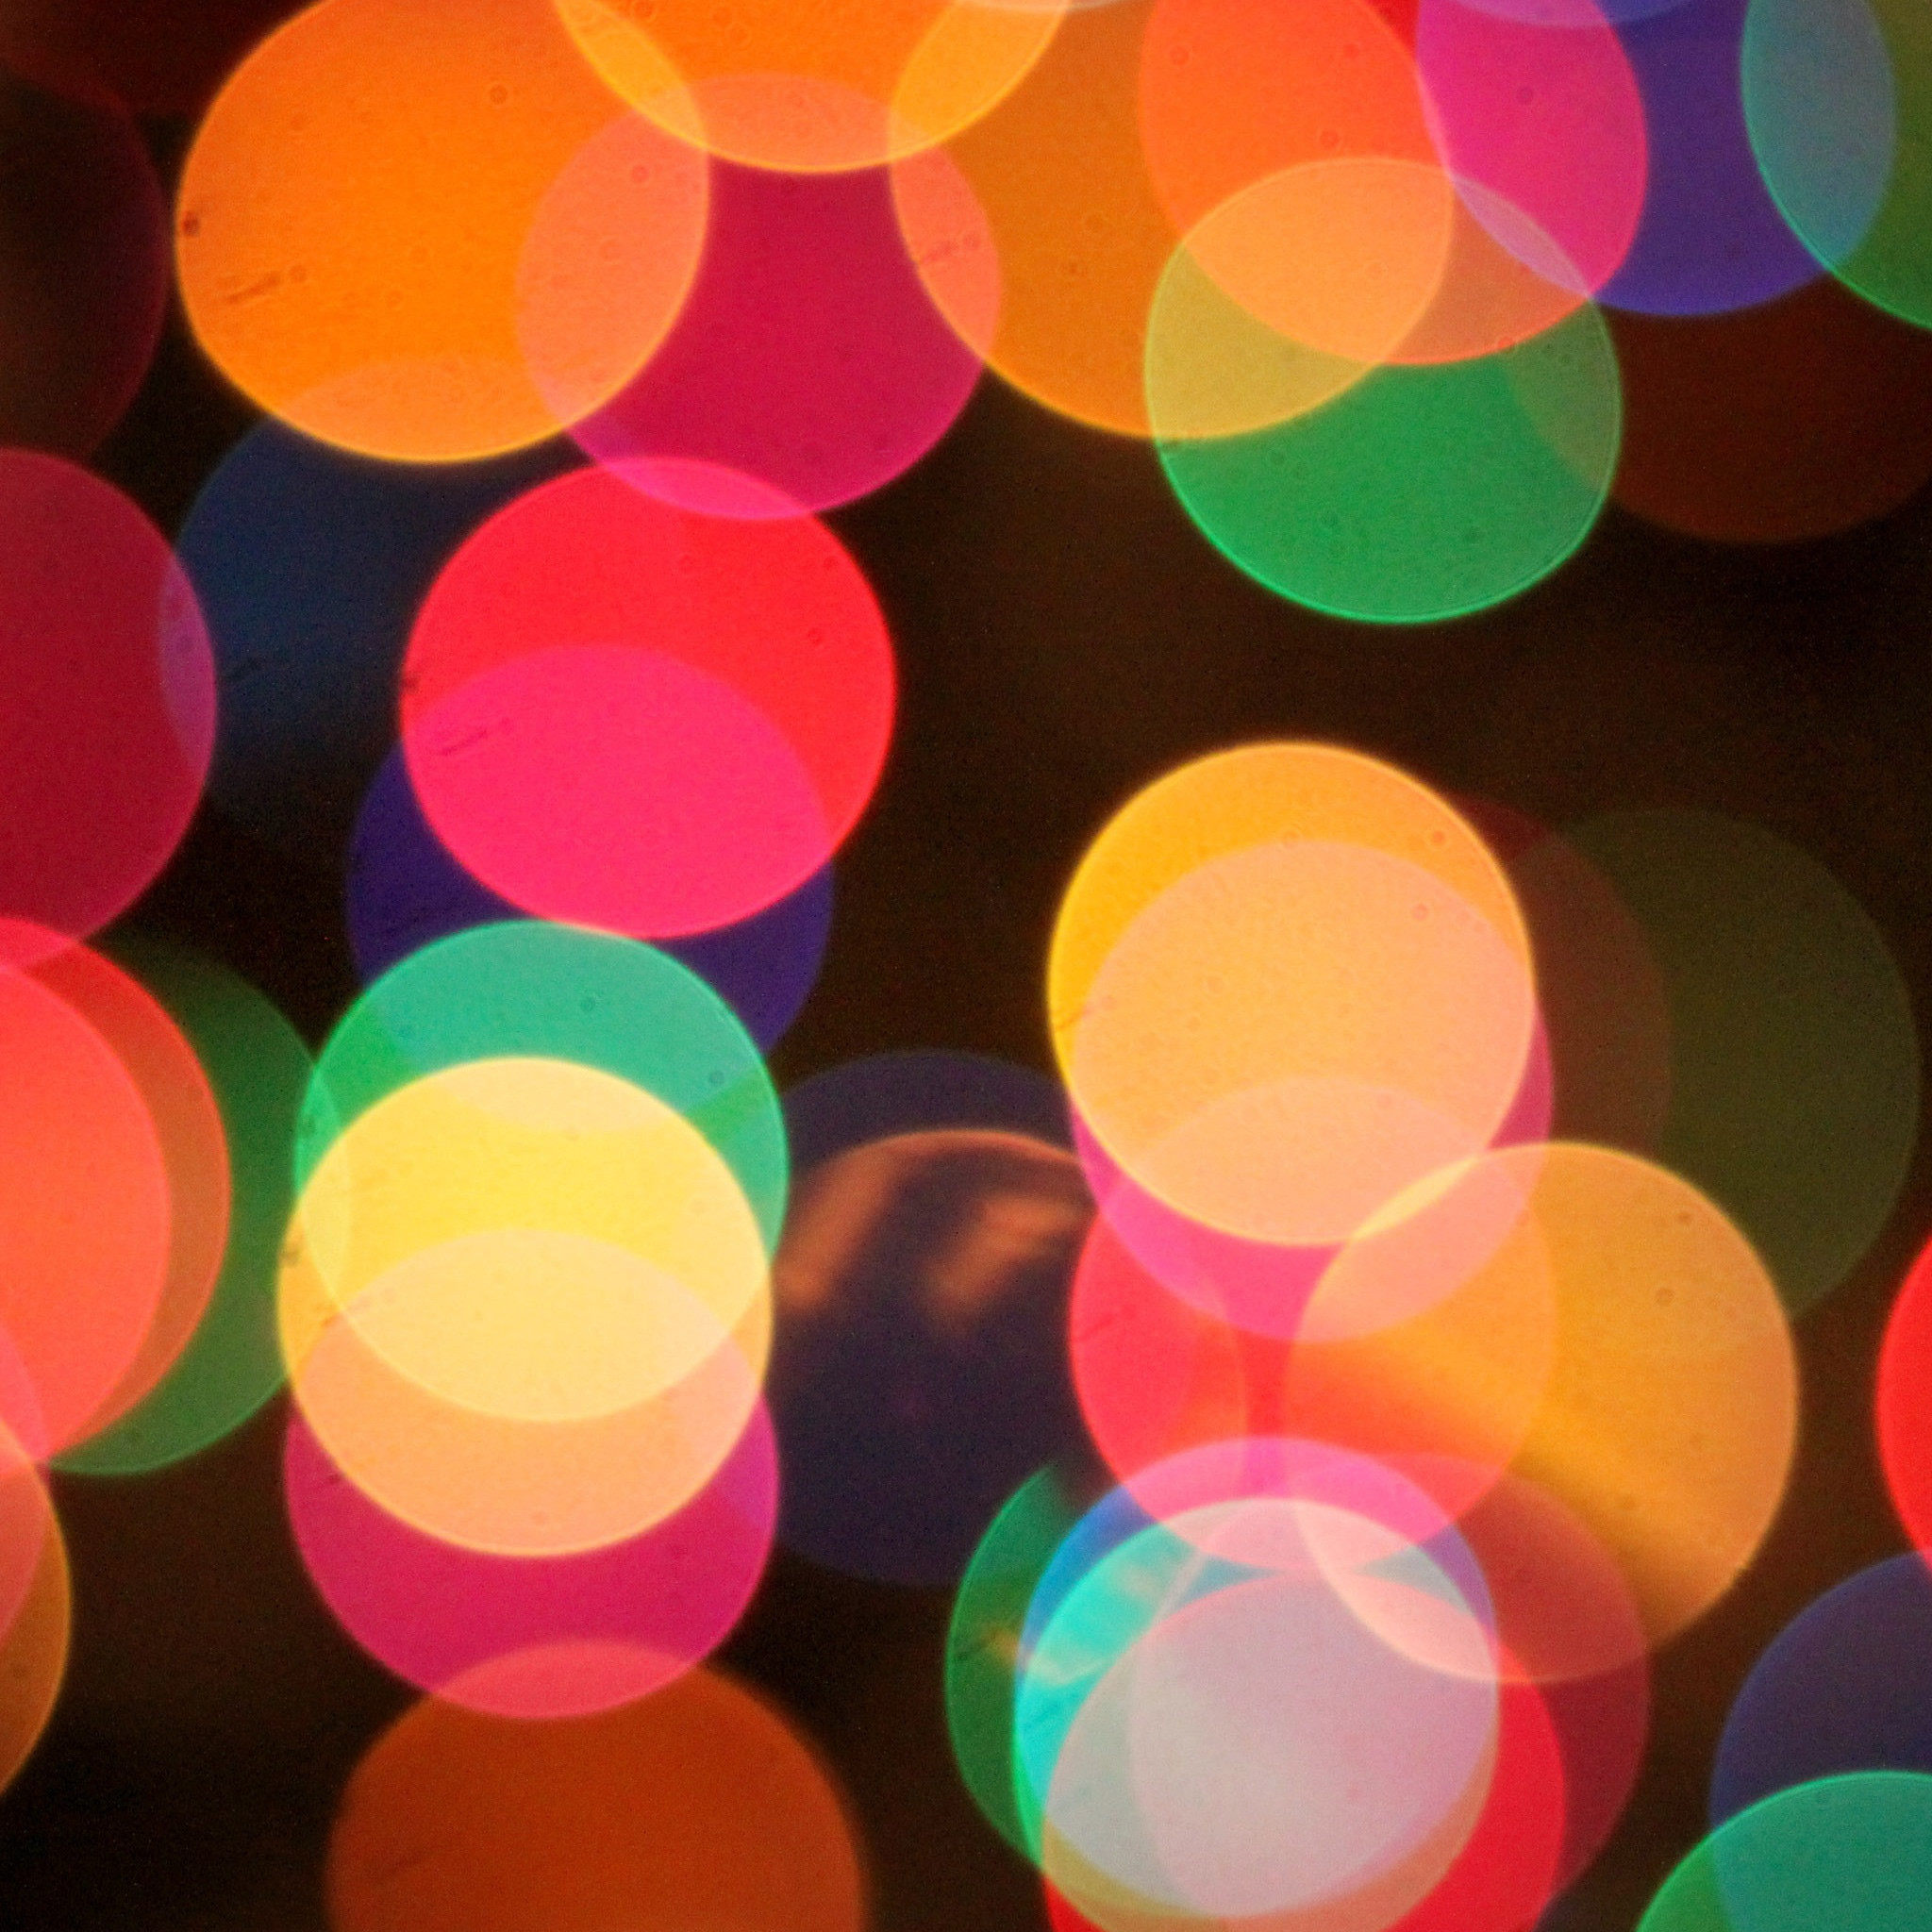 … the first bokeh of christmas ipad air wallpaper download iphone …